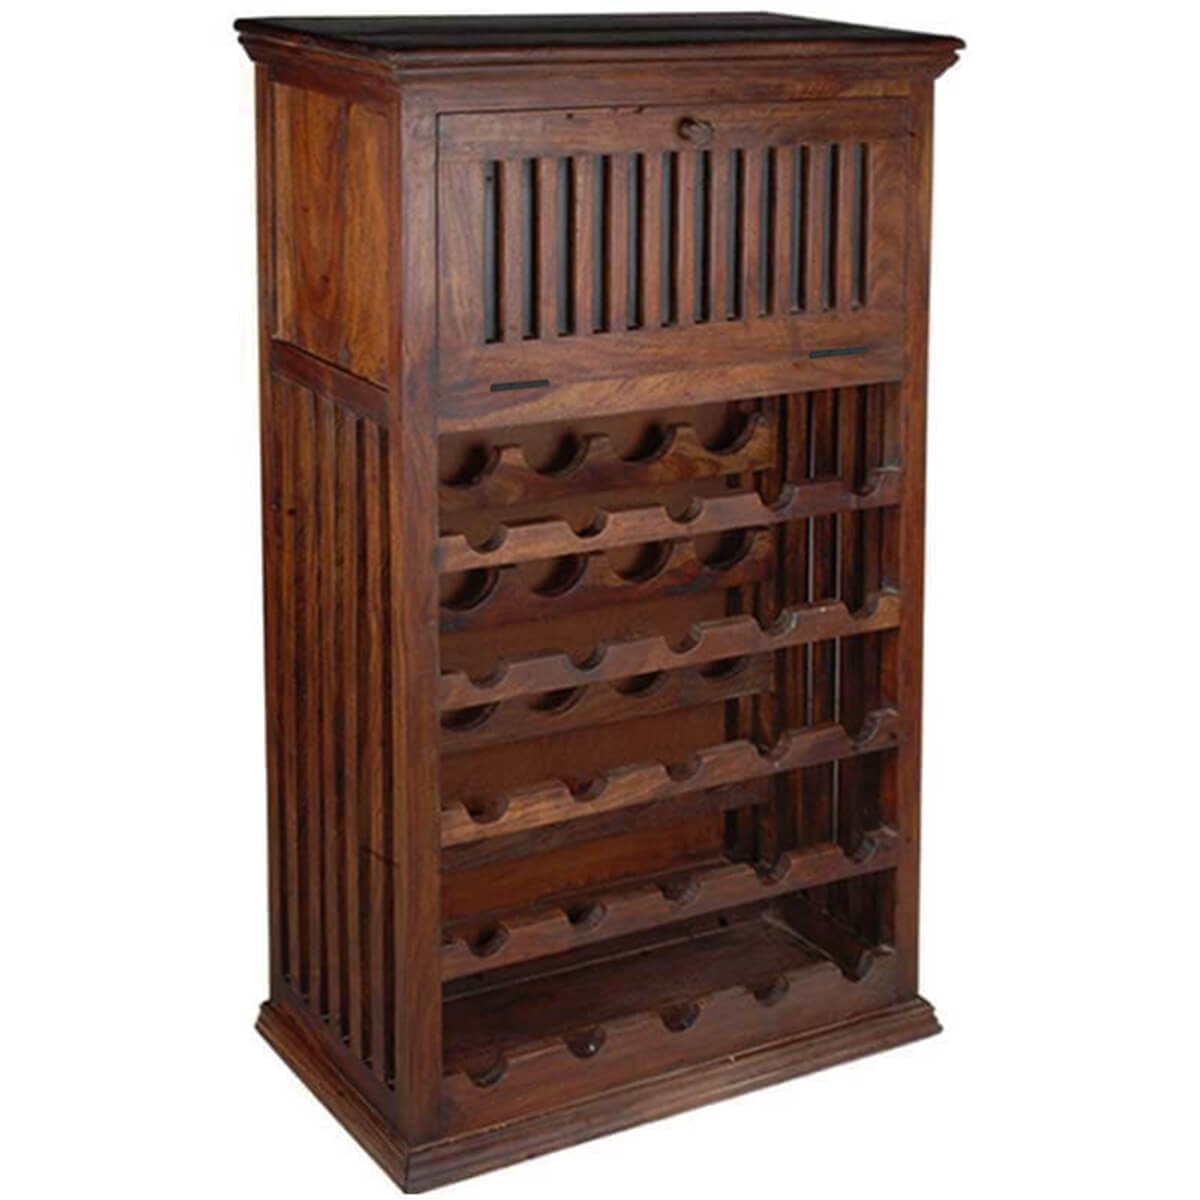 Haskins Solid Wood 25 Bottle Holder Wine Rack Storage Cabinet